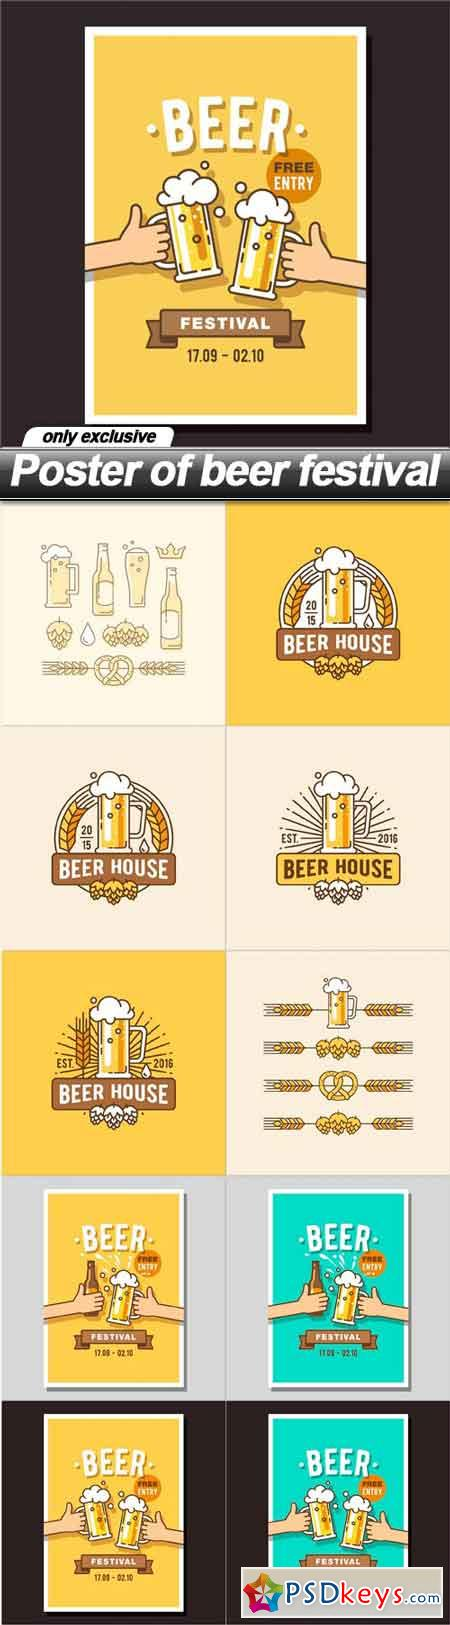 Poster of beer festival - 10 EPS